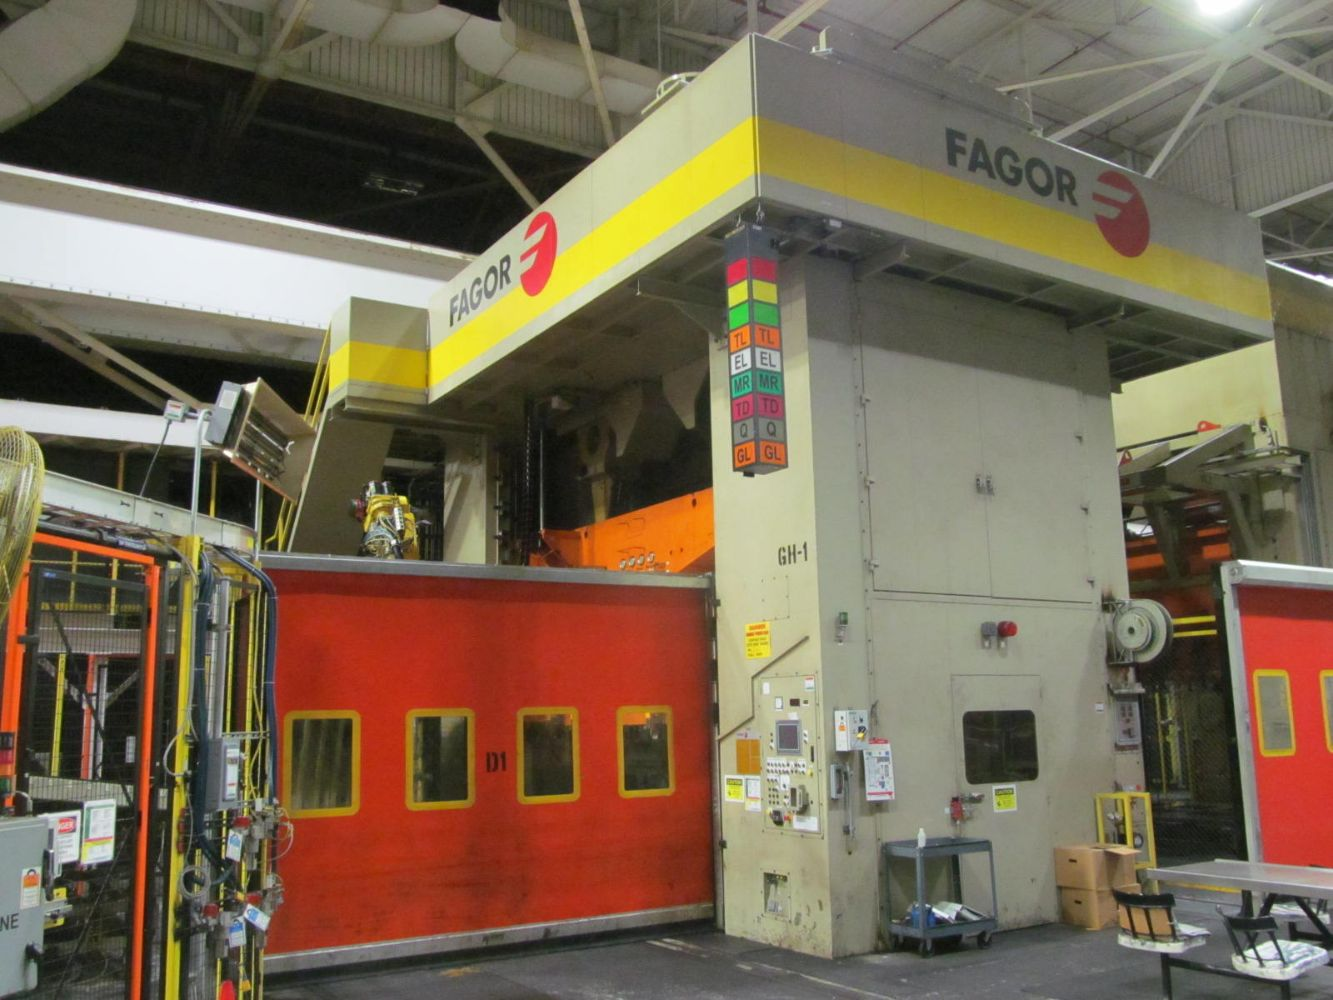 2011 FAGOR 2250 TON TANDEM PRESS LINE & DANLY 2000 TON TRANSFER PRESS, DIE CARTS, DANLY BLANKING LINE, VERSION SPOTTING PRESSES, 6 AXIS ROBOTICS